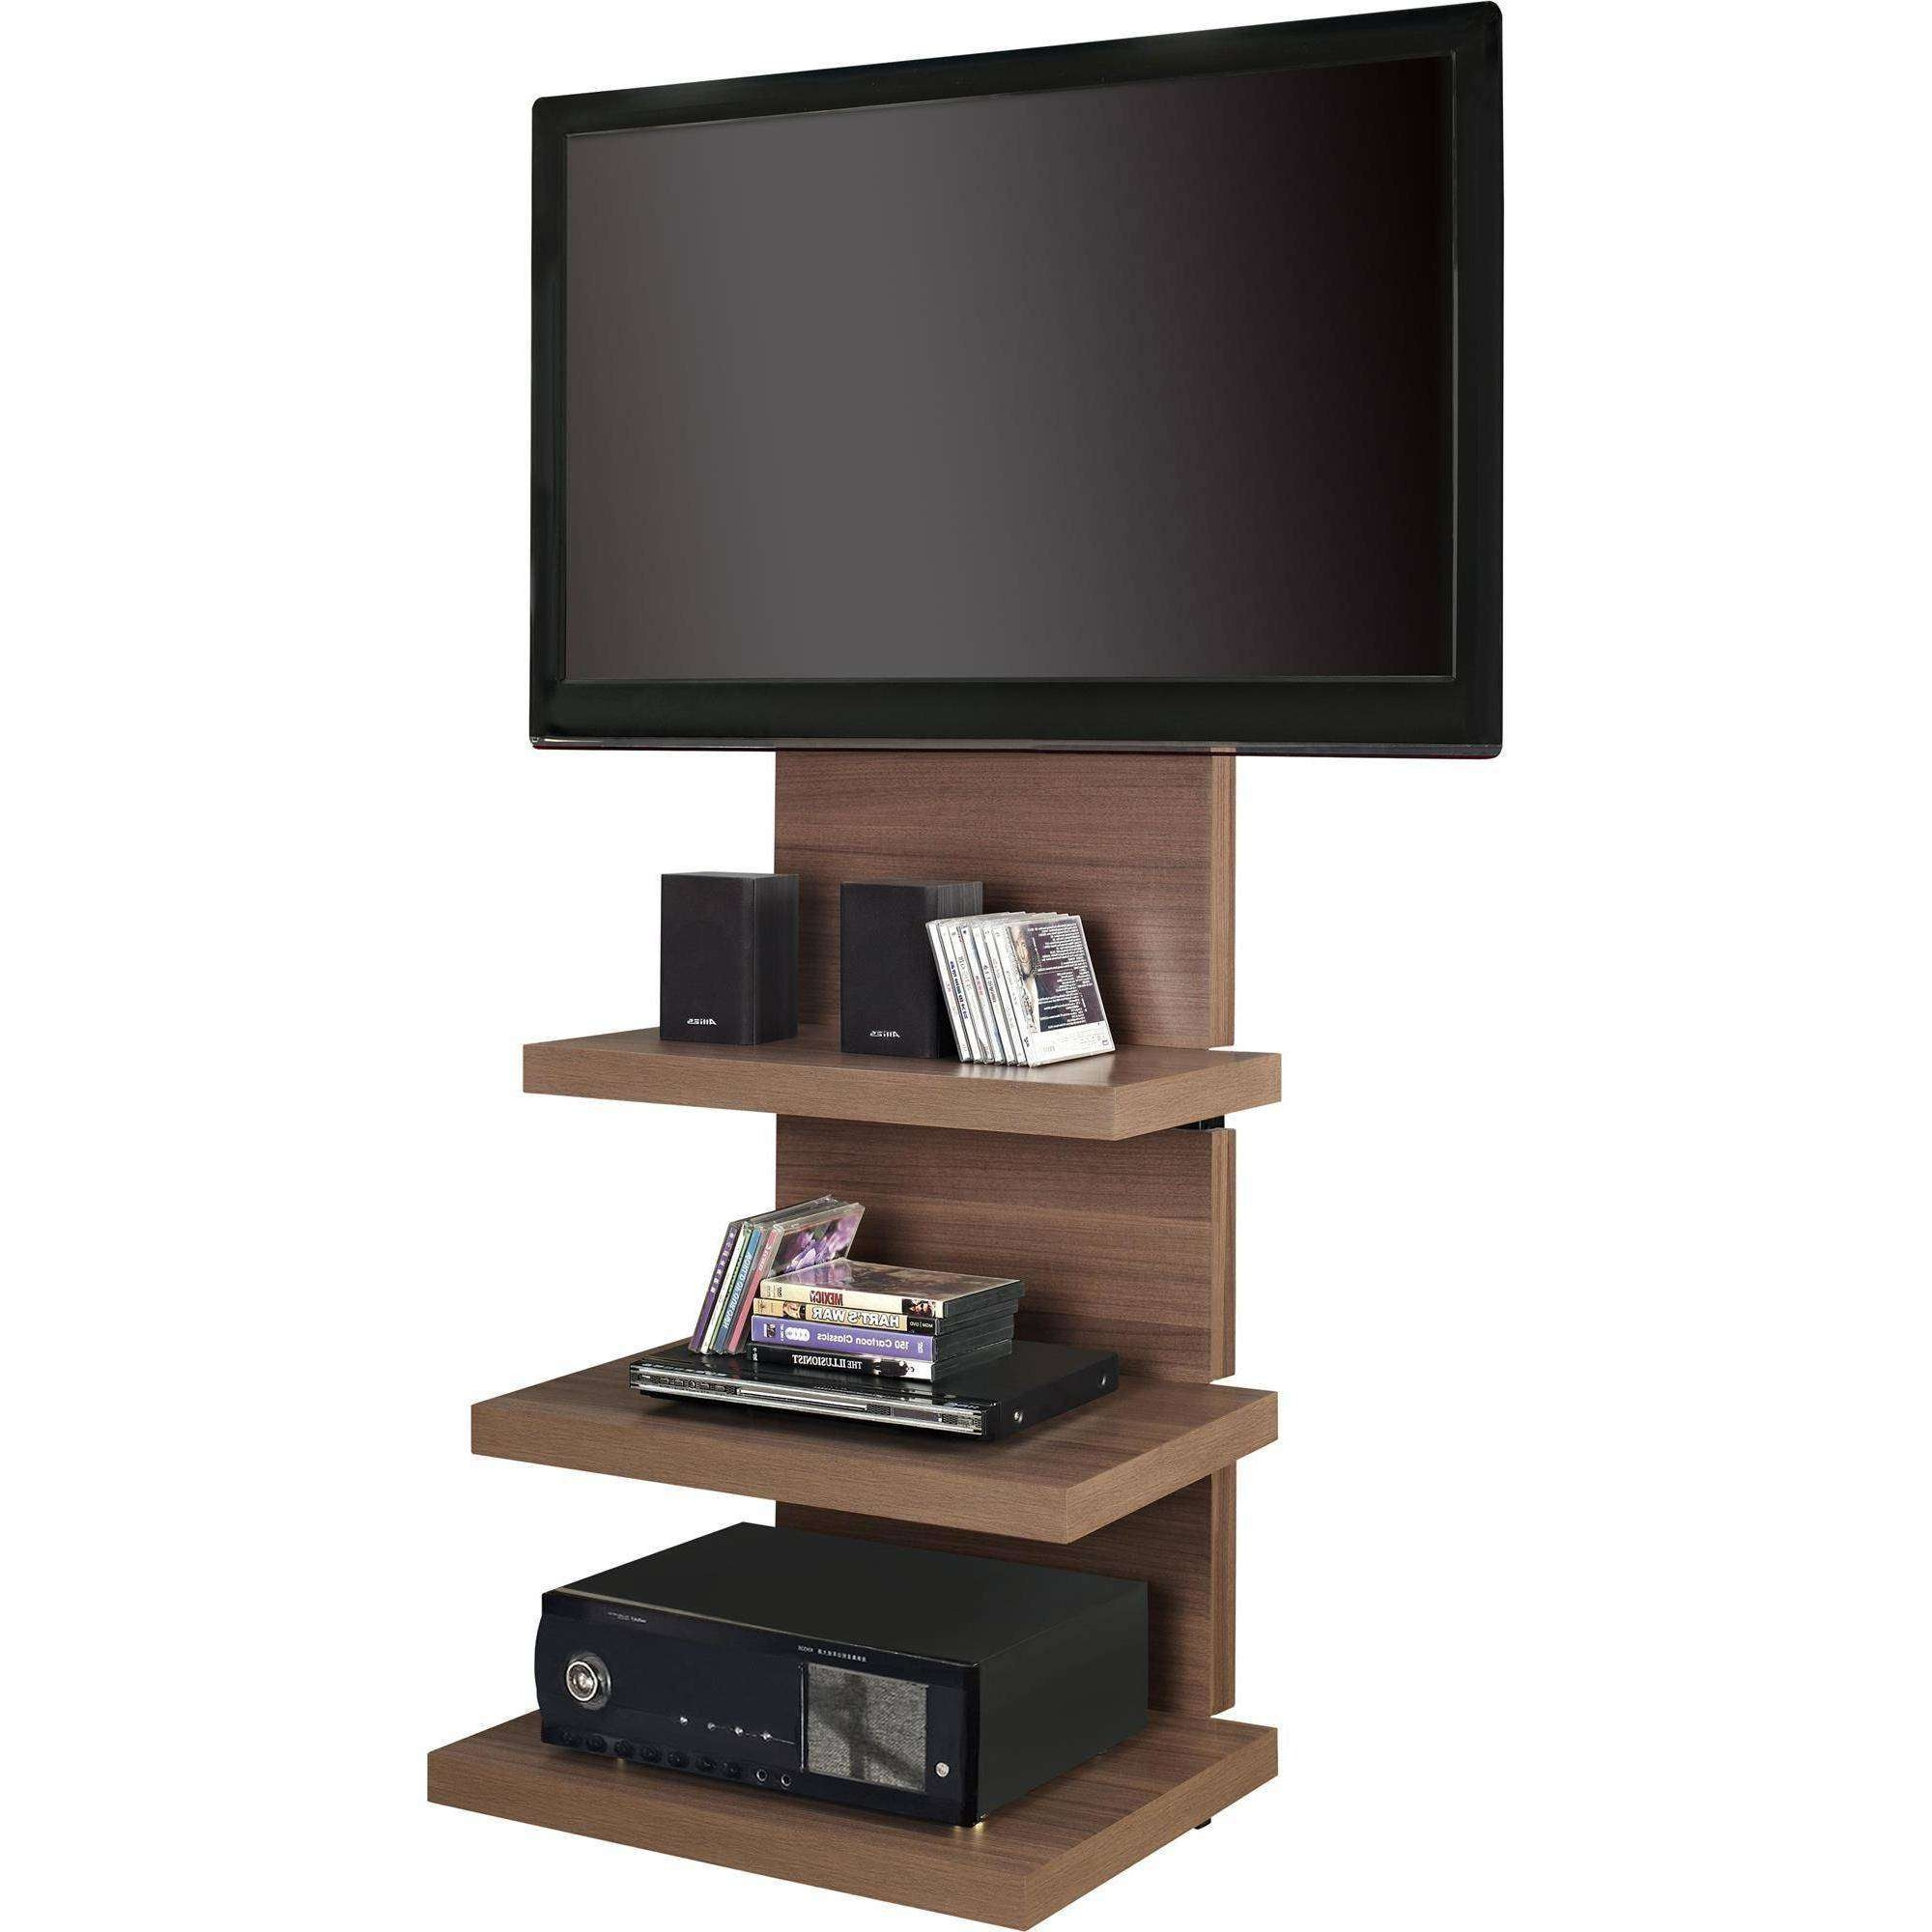 Wall Shelves Design: Wall Mount Tv Stand With Shelves Soundbar With Bracketed Tv Stands (View 6 of 15)